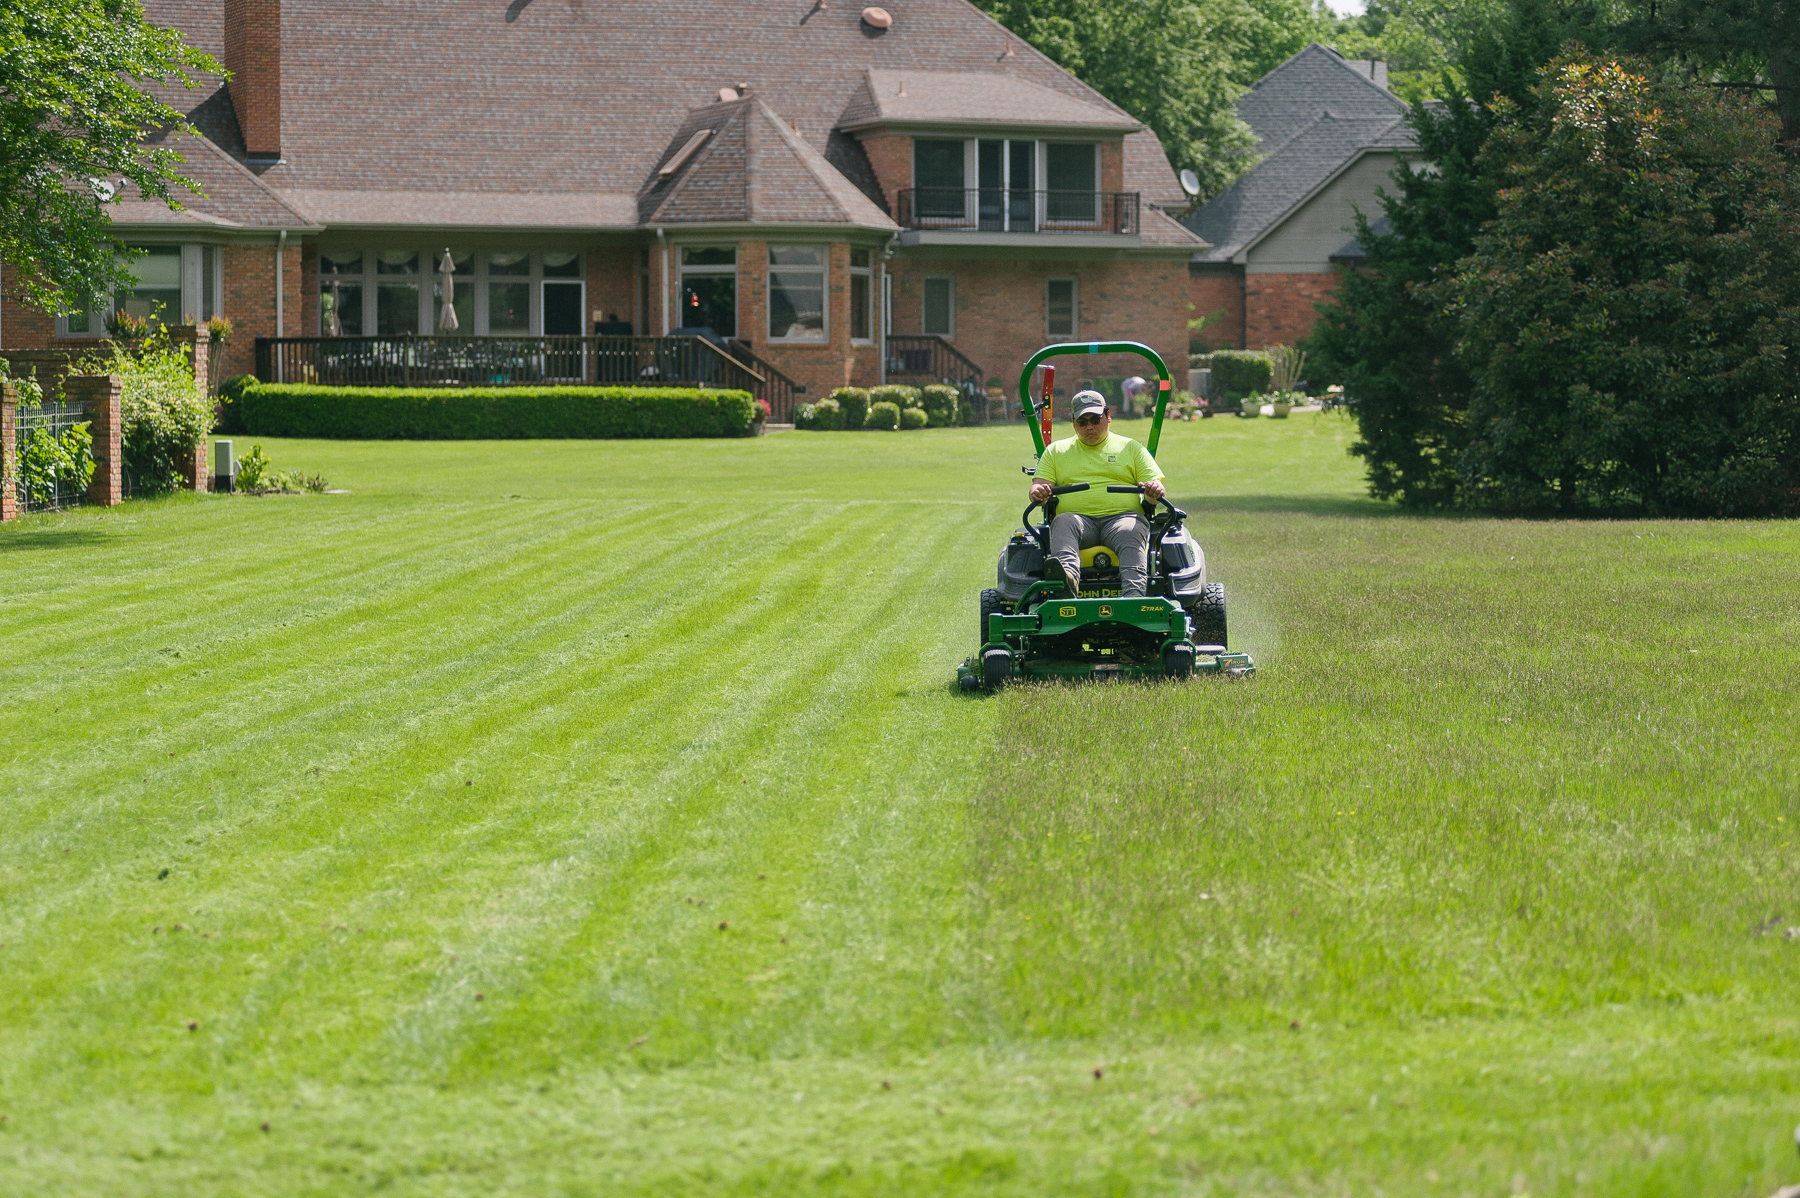 Professional lawn care technician mowing lawn